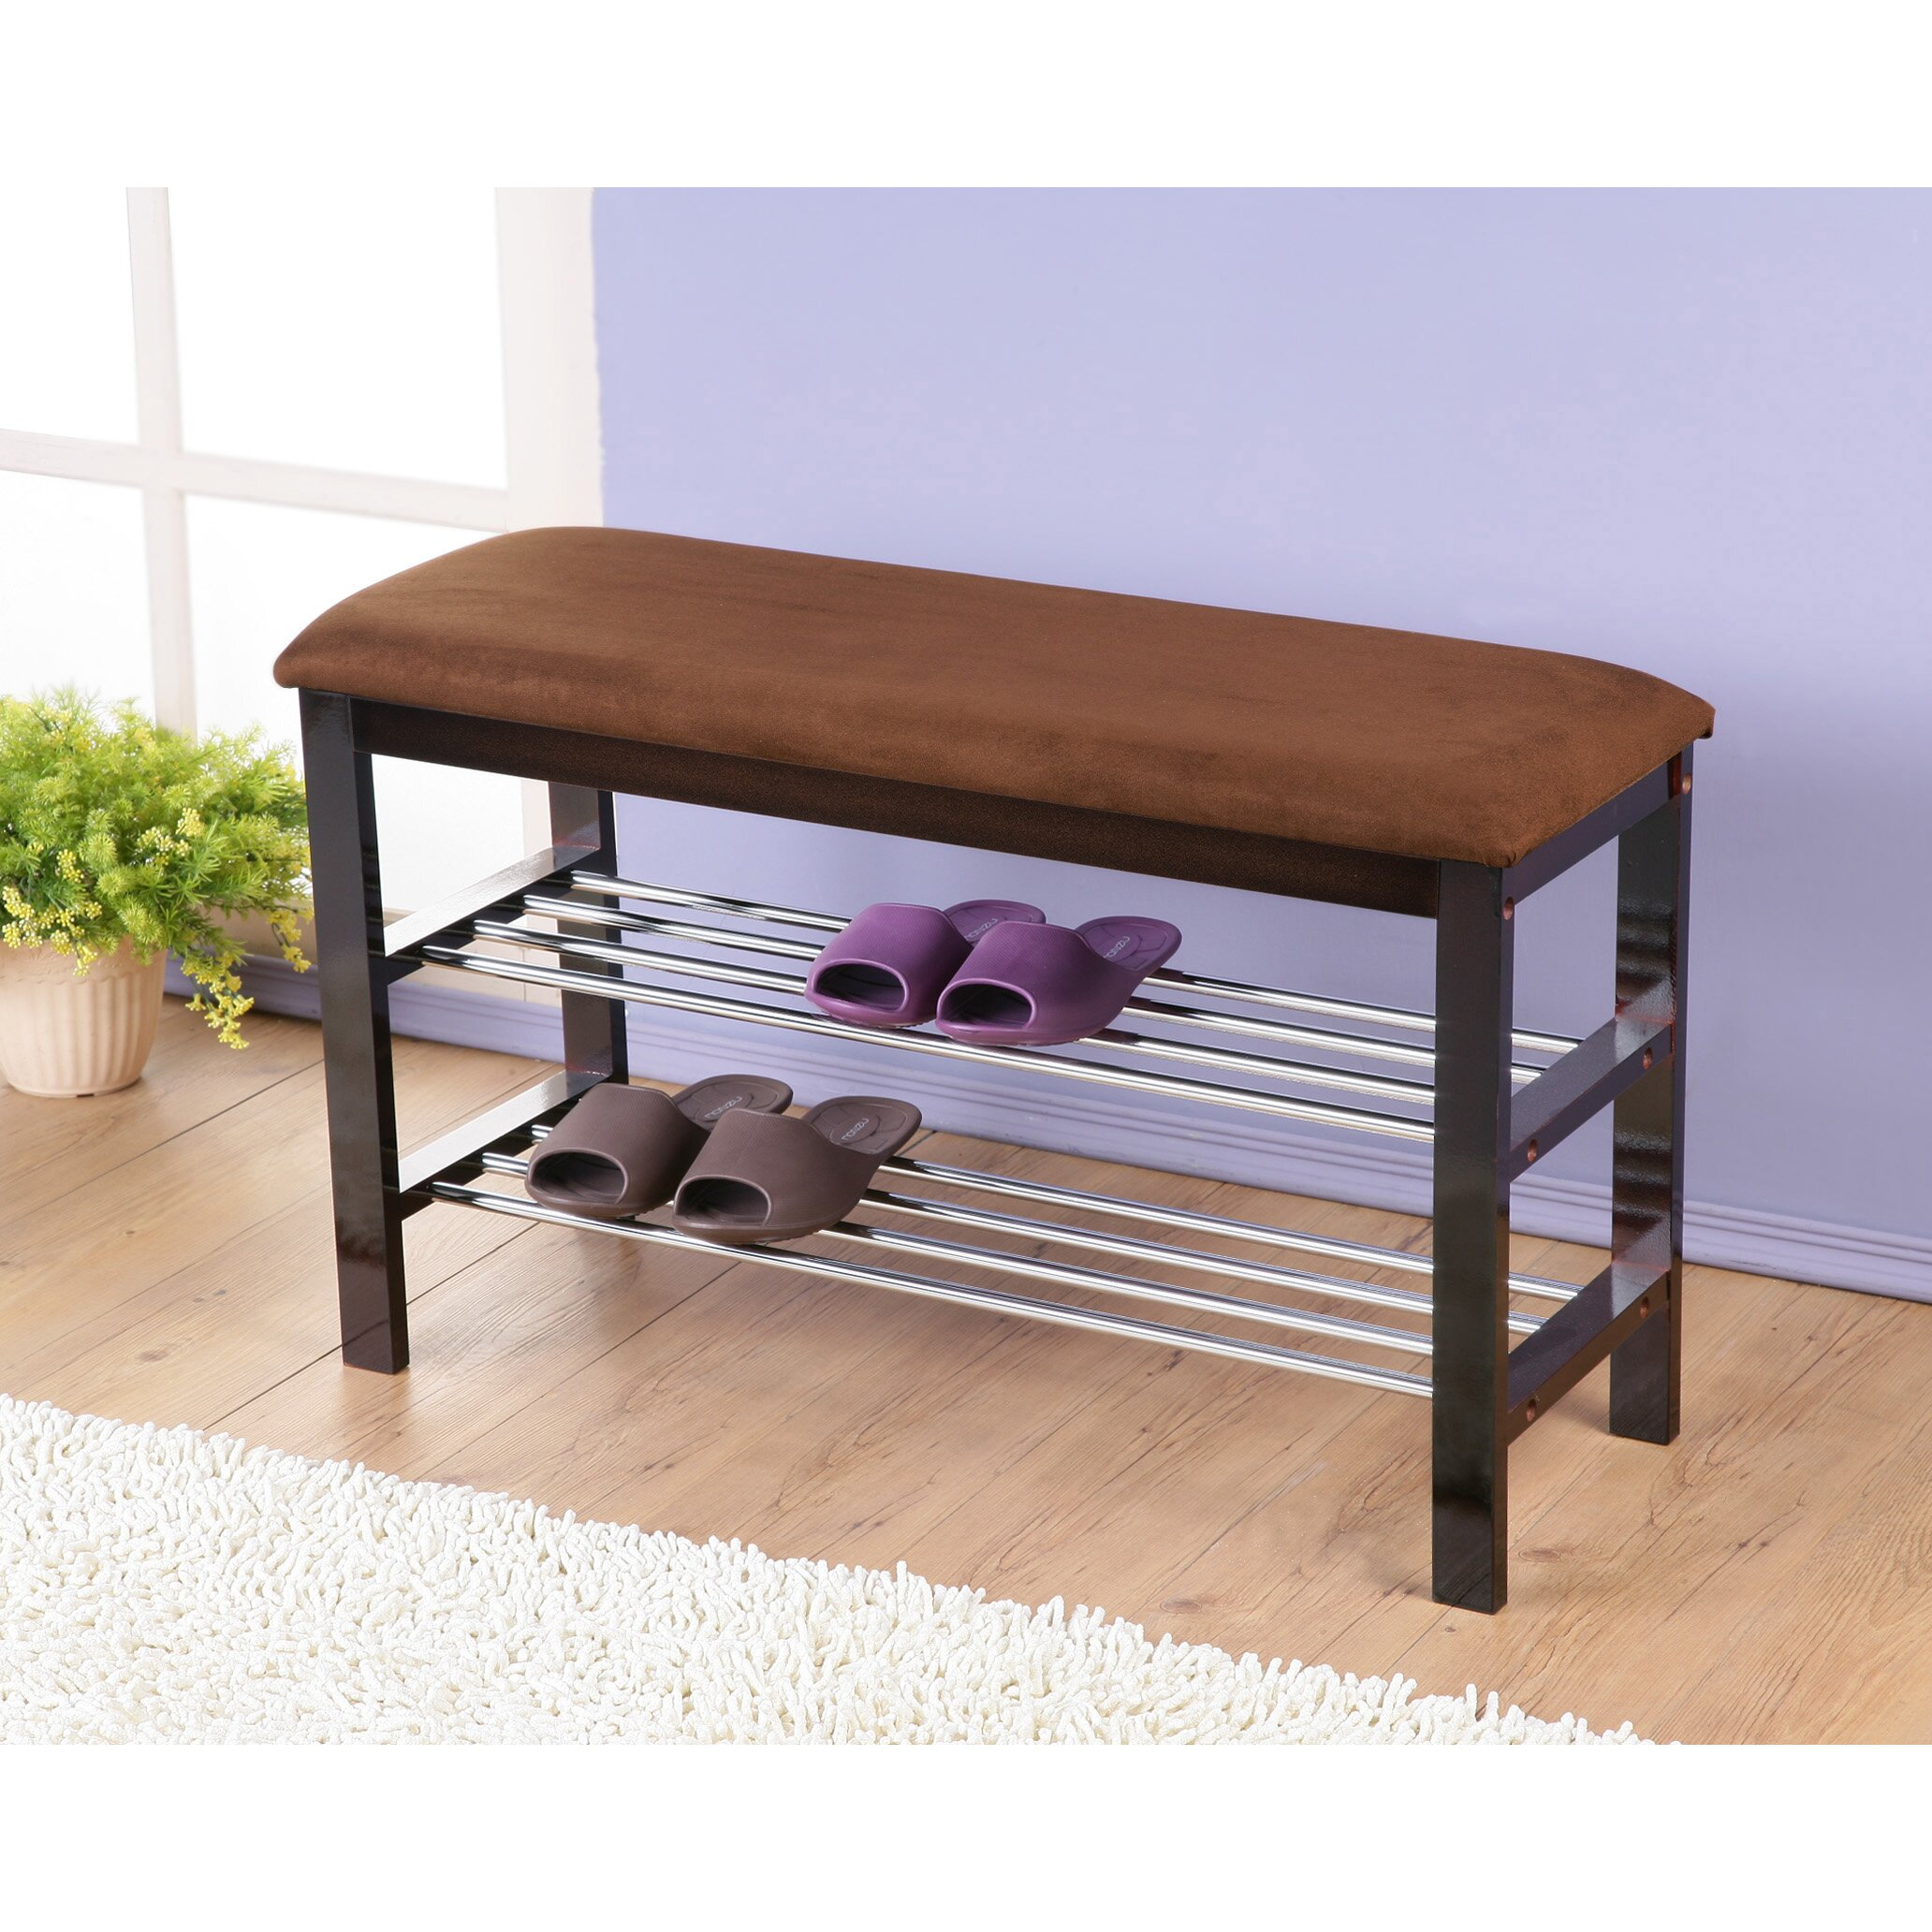 Roundhill Furniture Wood Shoe Bench Reviews Wayfair